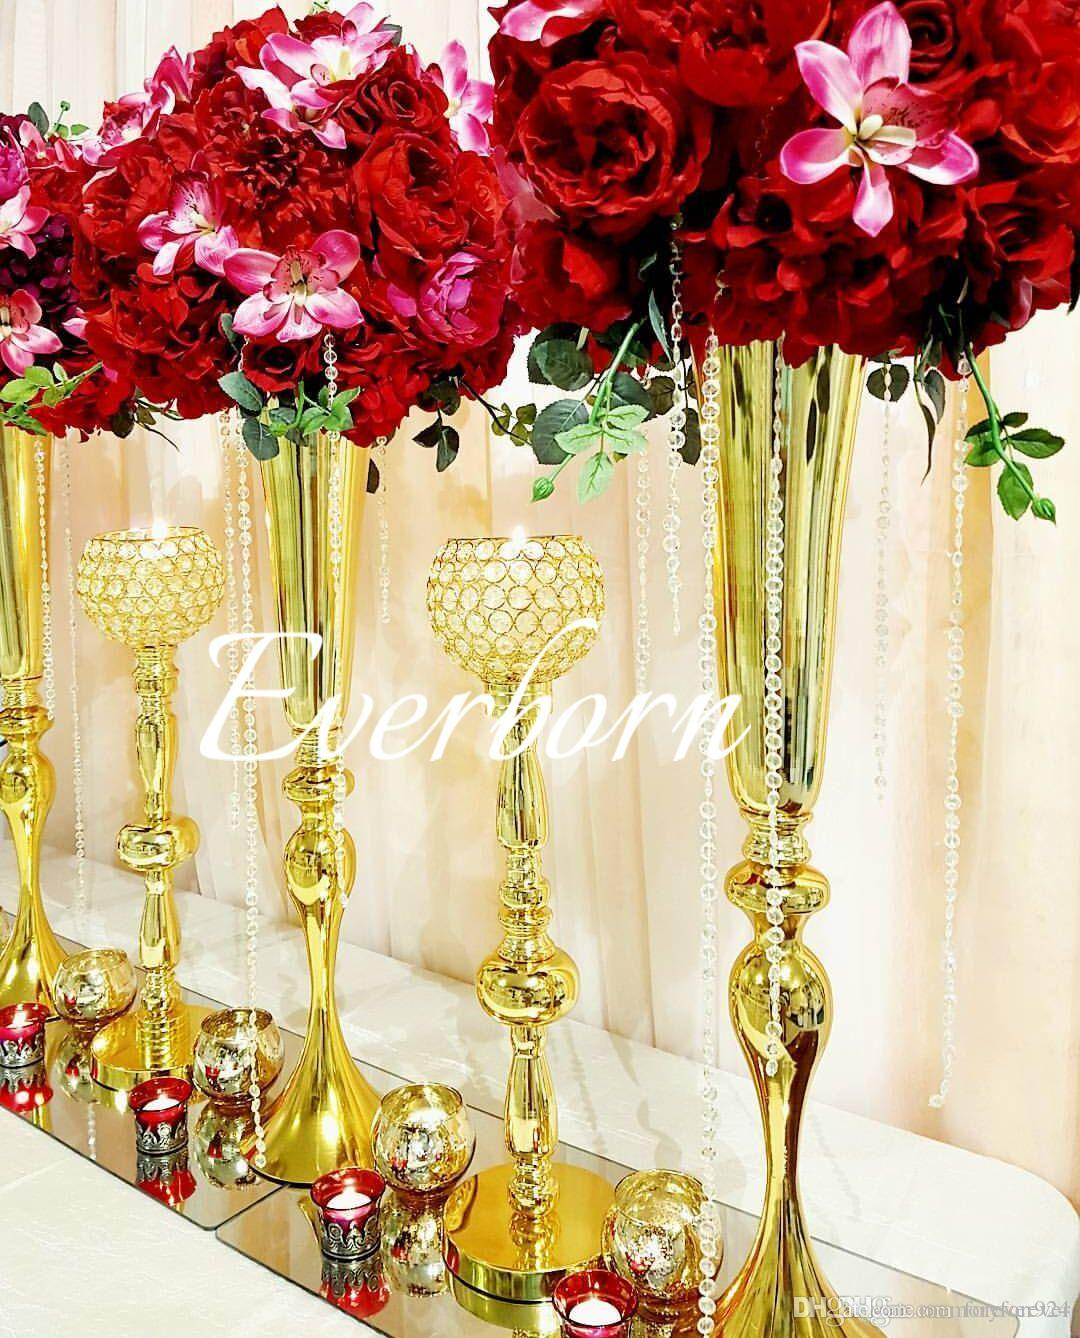 Flower Vases For Weddings: 2020 88cm Tall Slim Metal Flower Vase , Trumpet Vases